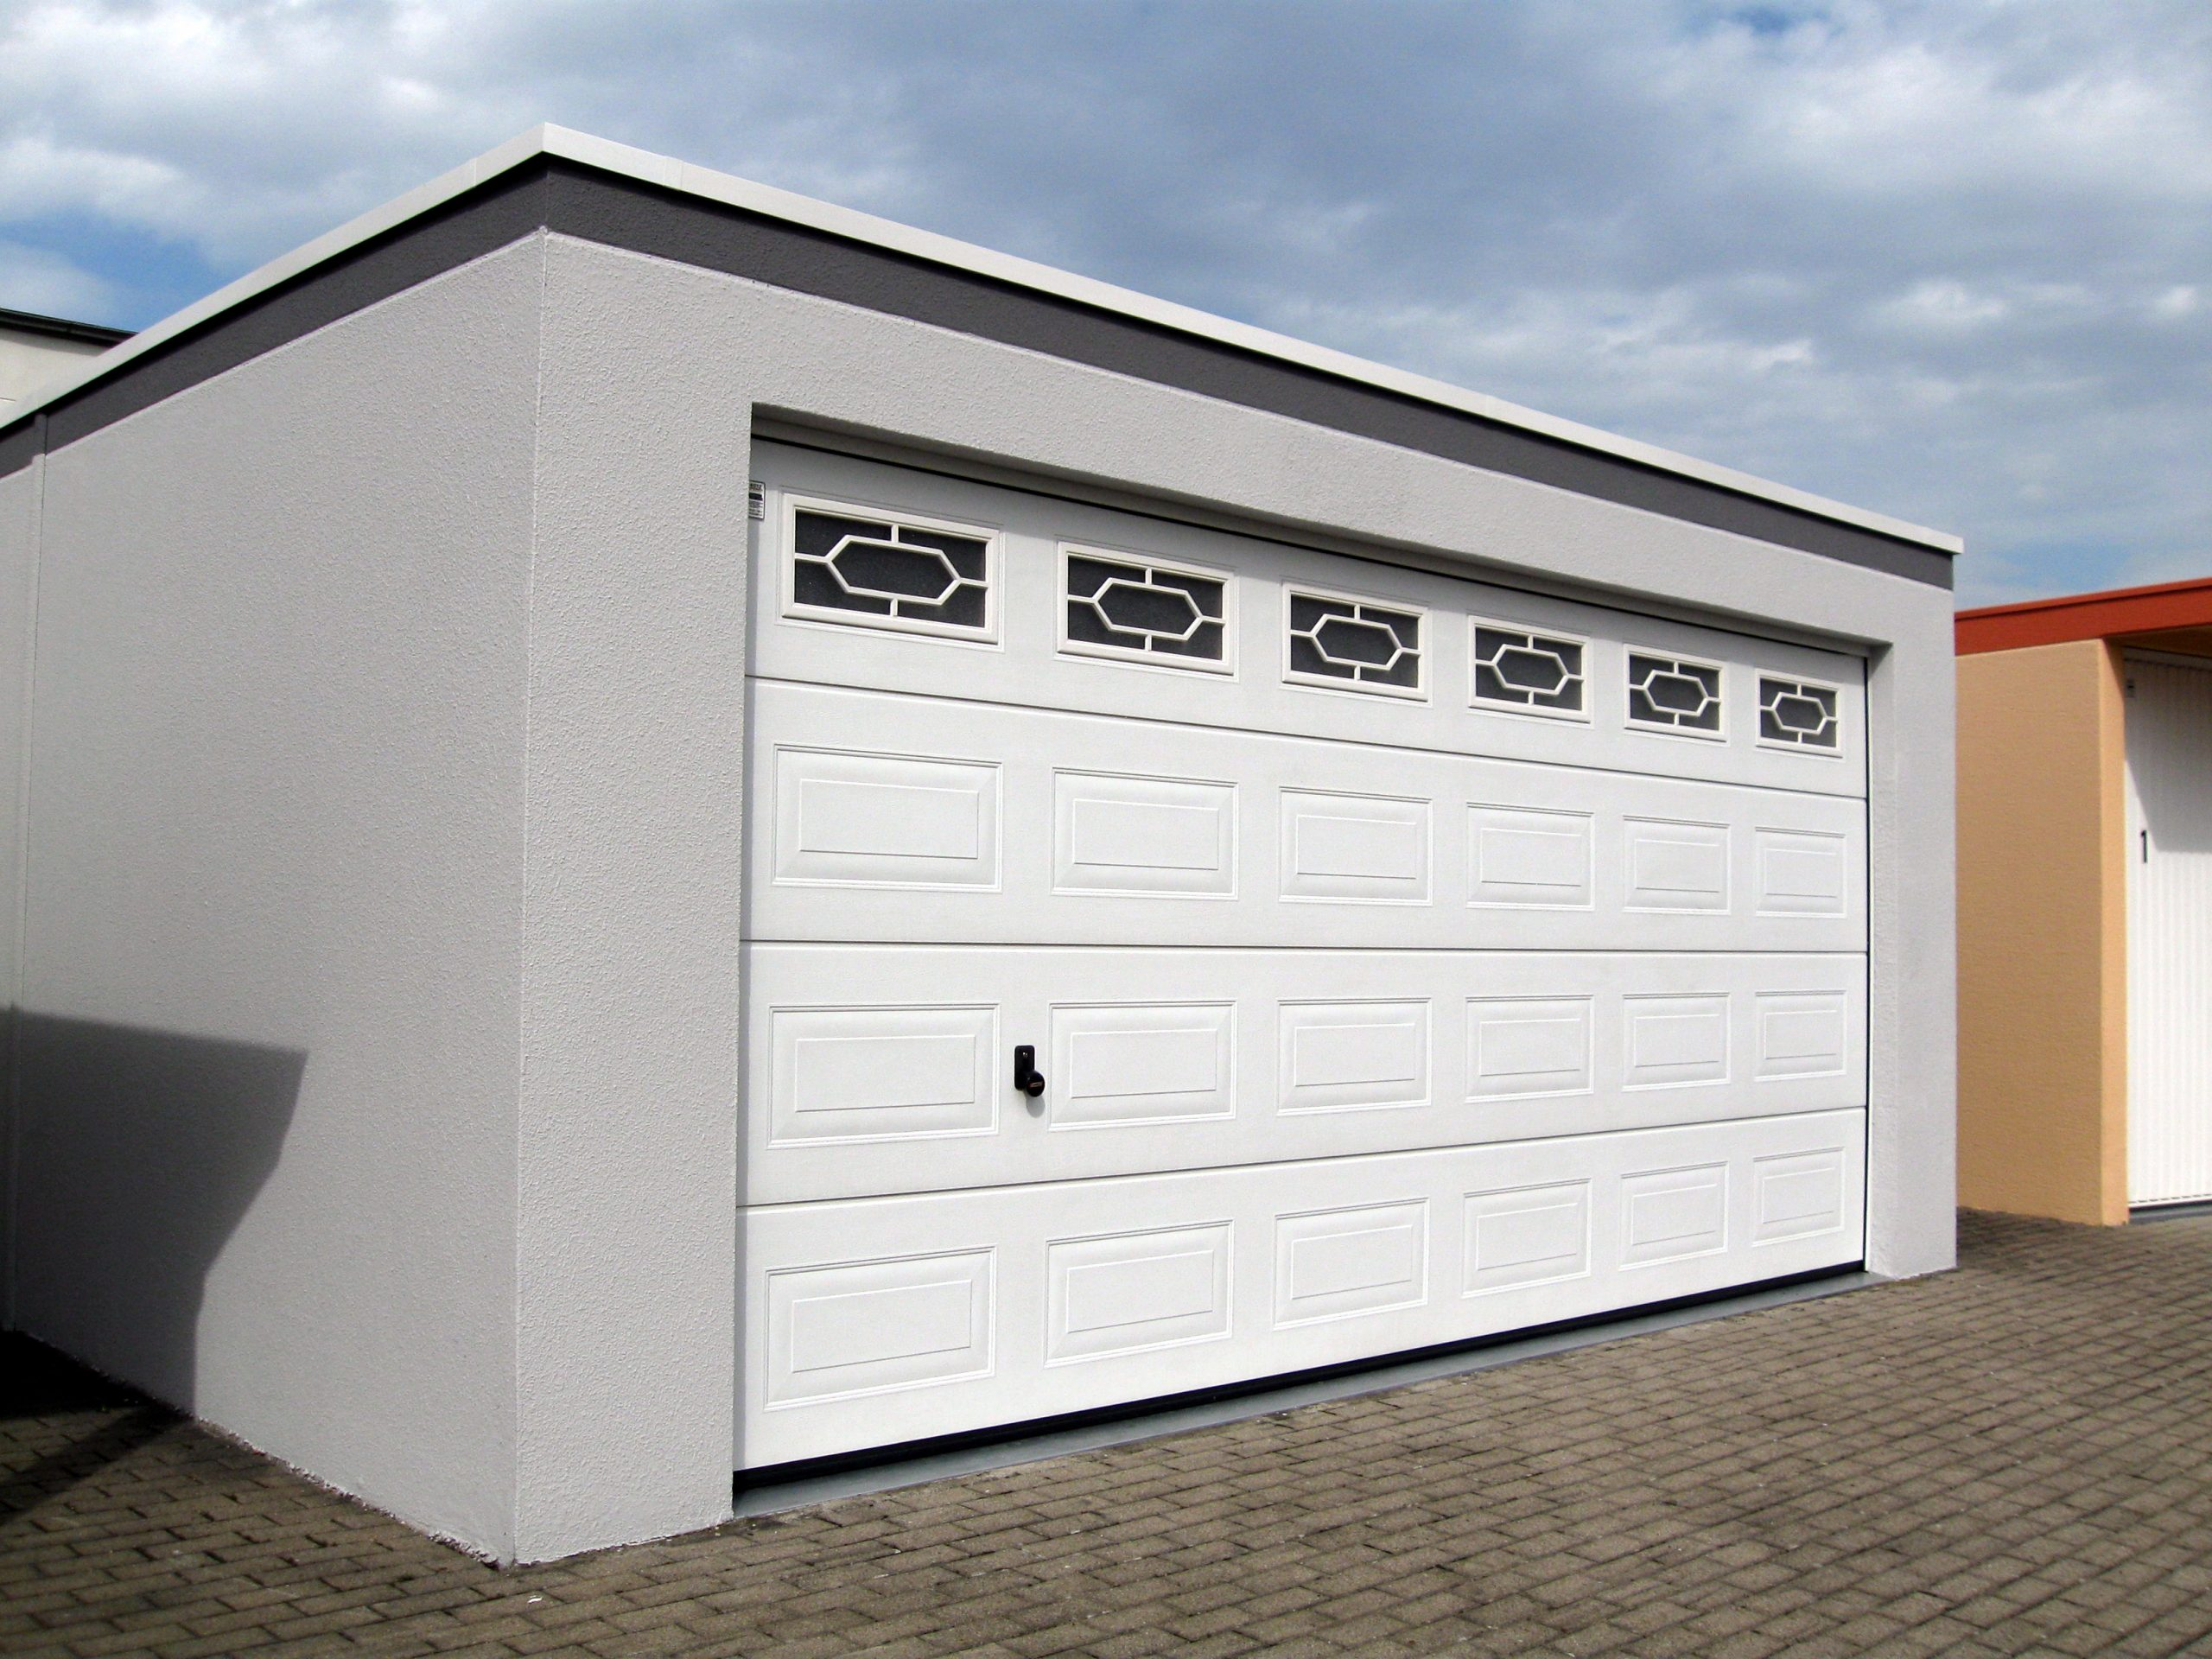 Garage Door Repair Tulsa – Top best repair services